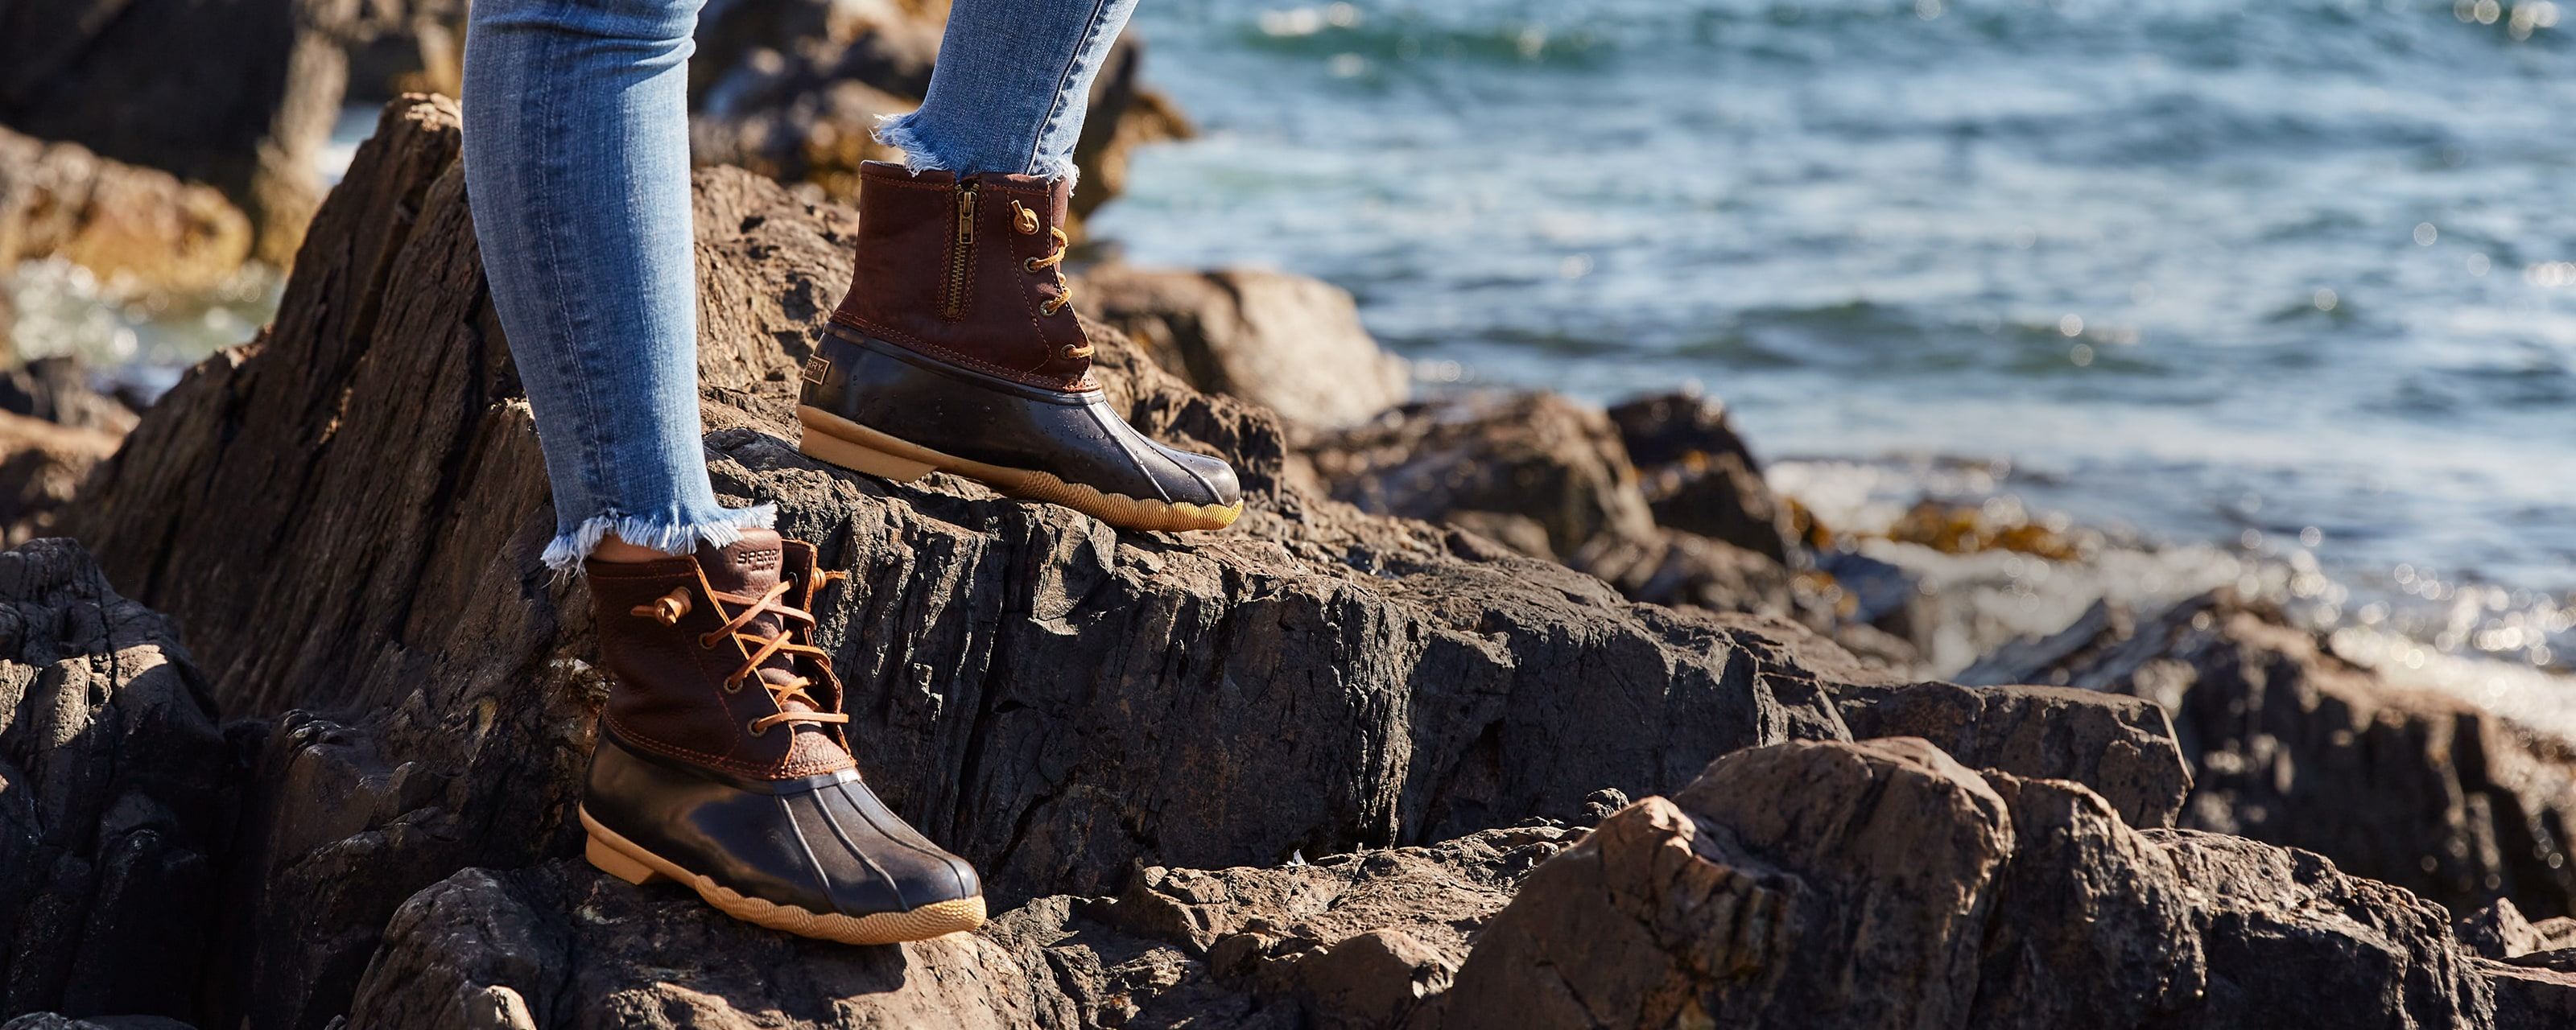 Person standing on the rocks by the ocean, wearing Sperry Saltwater boots.